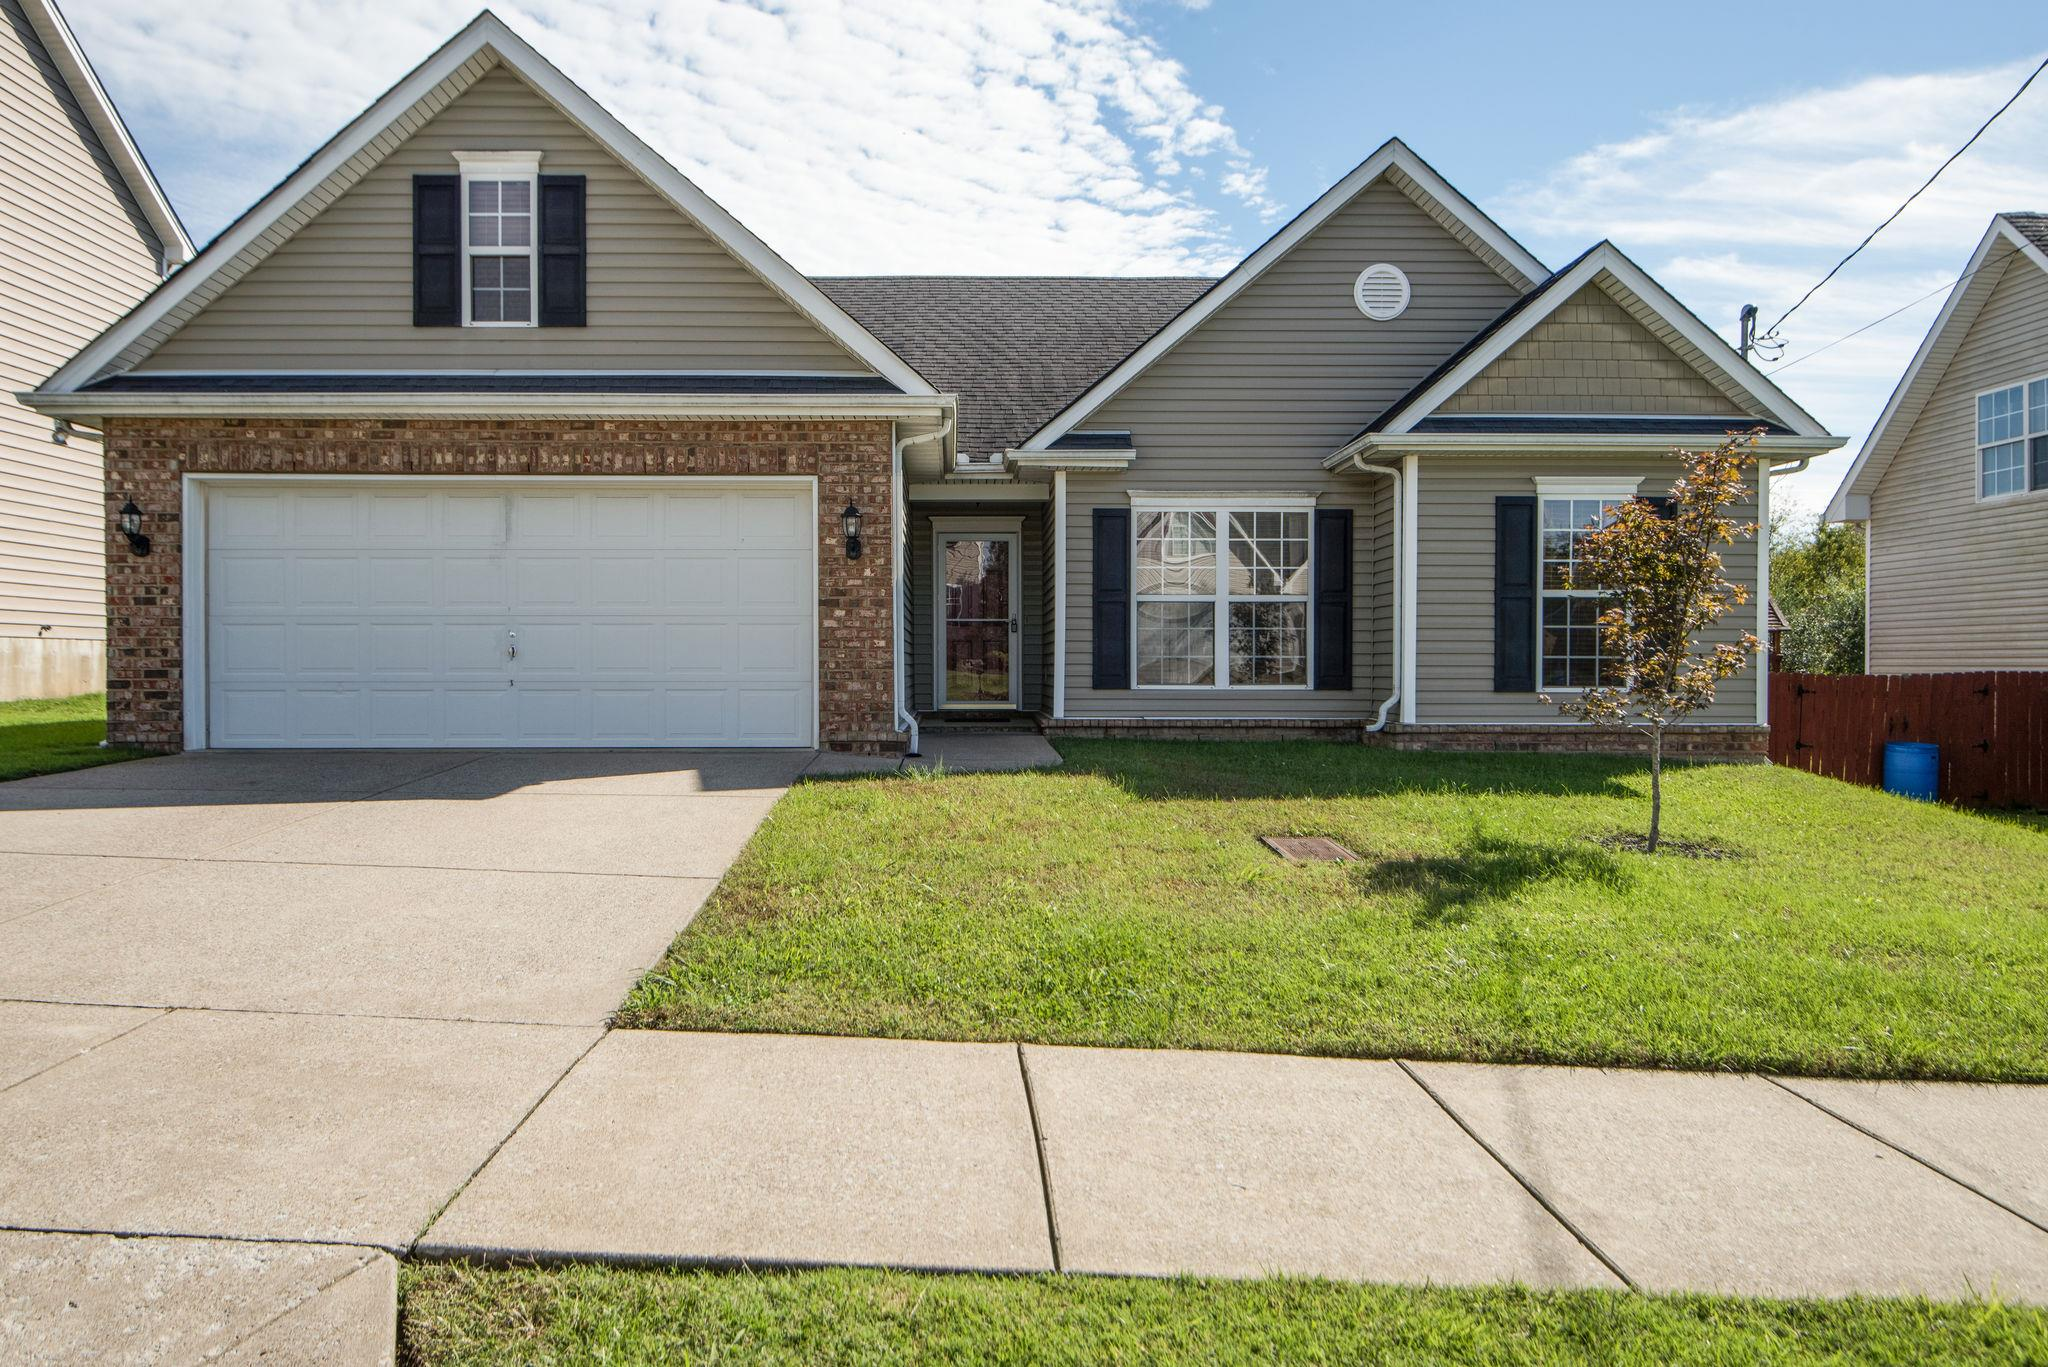 7420 Maggie Dr, Nashville-Antioch in Davidson County County, TN 37013 Home for Sale